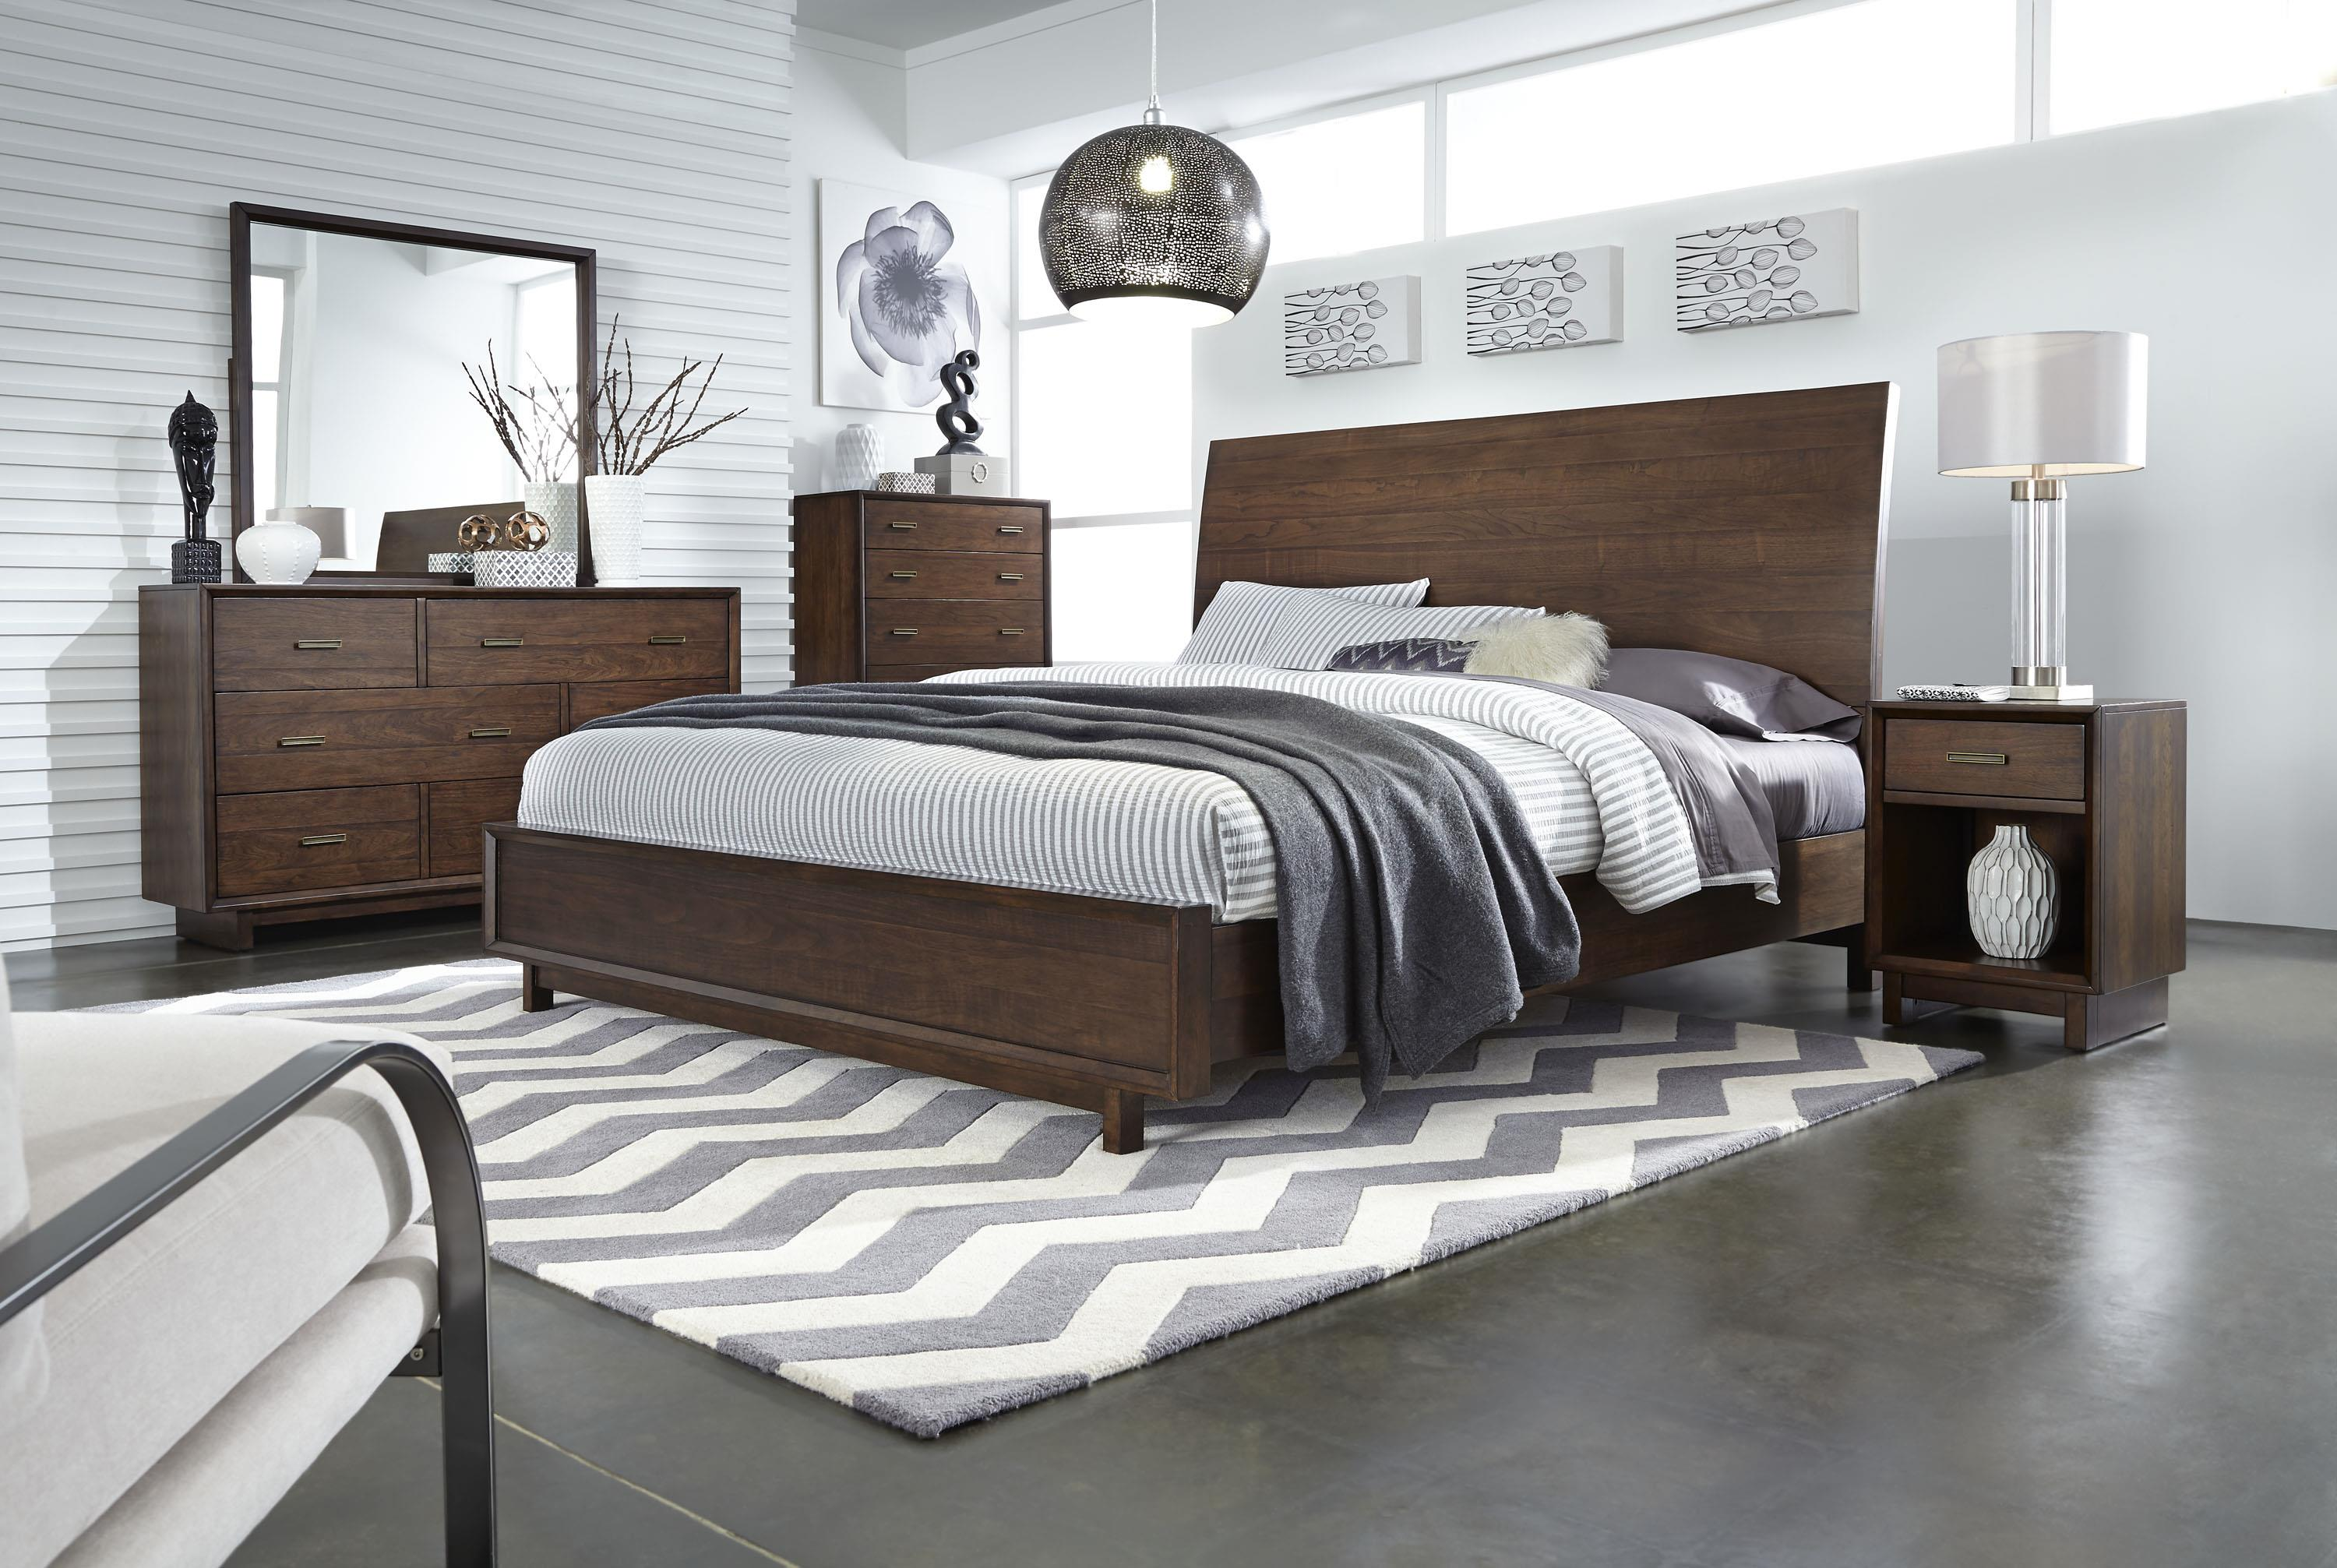 Aspenhome Walnut Heights California King Bedroom Group 1 - Item Number: IWH CK Bedroom Group 1